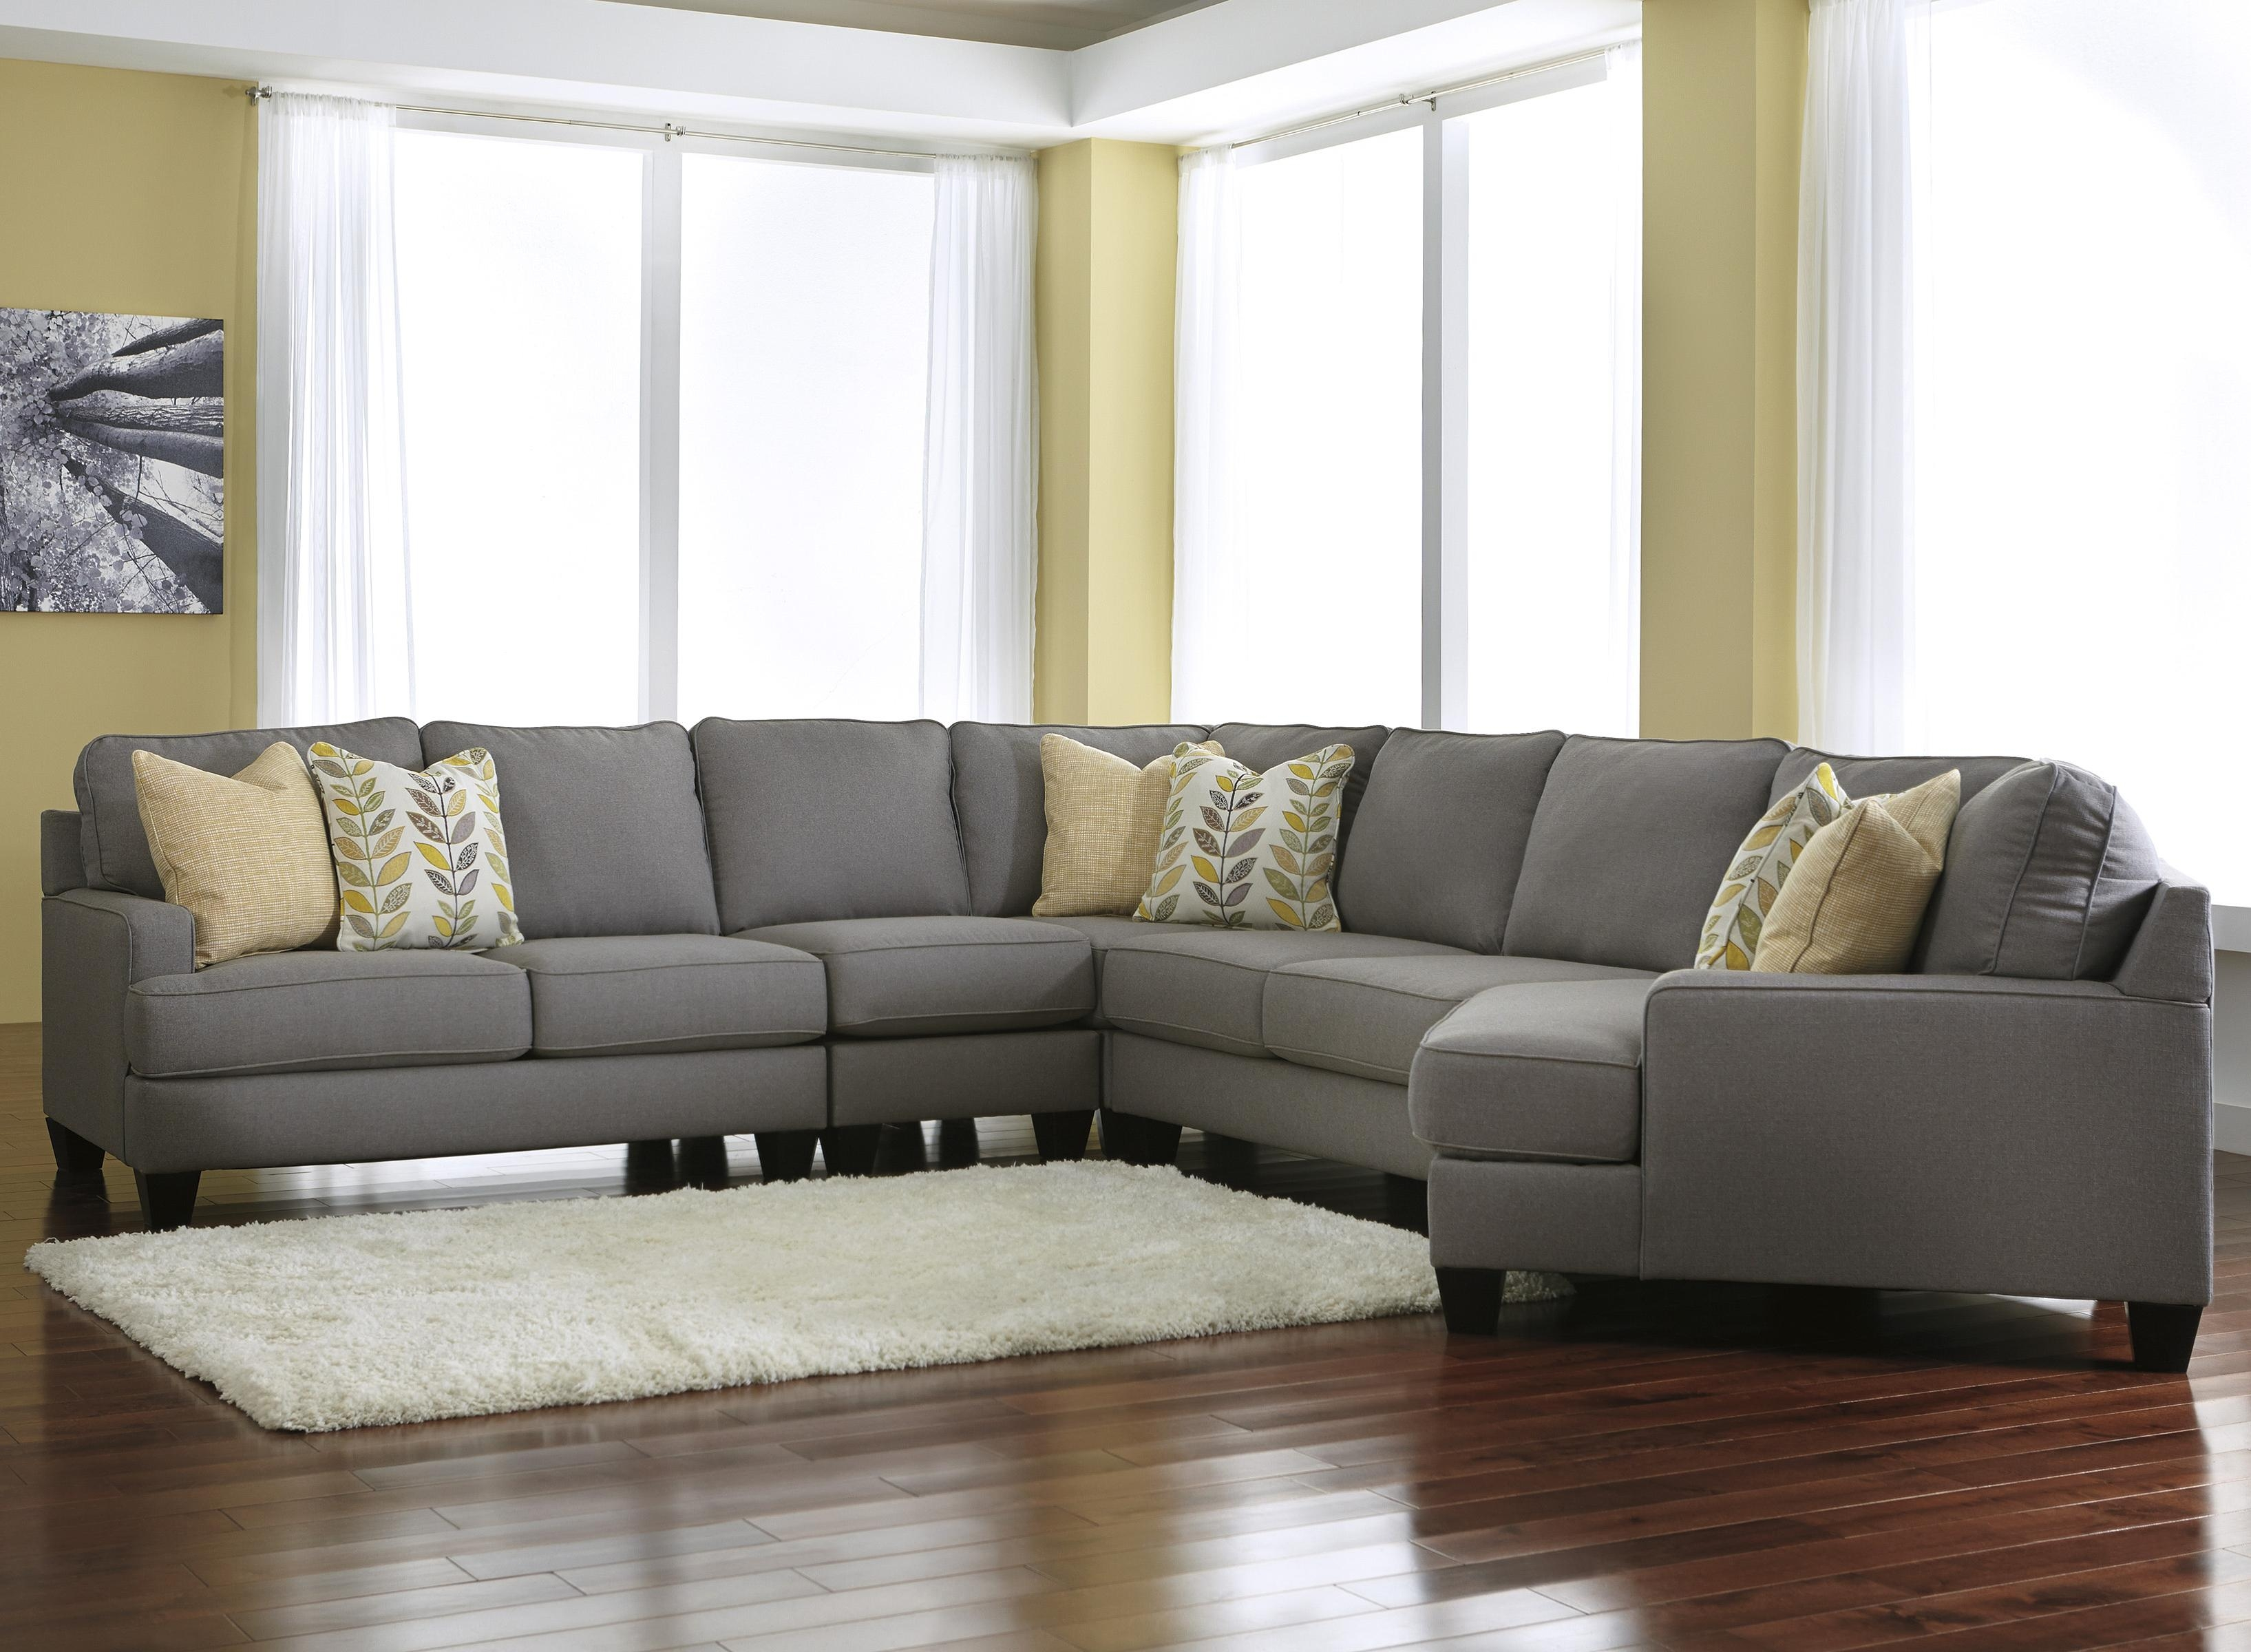 12 Best of Cuddler Sectional Sofa